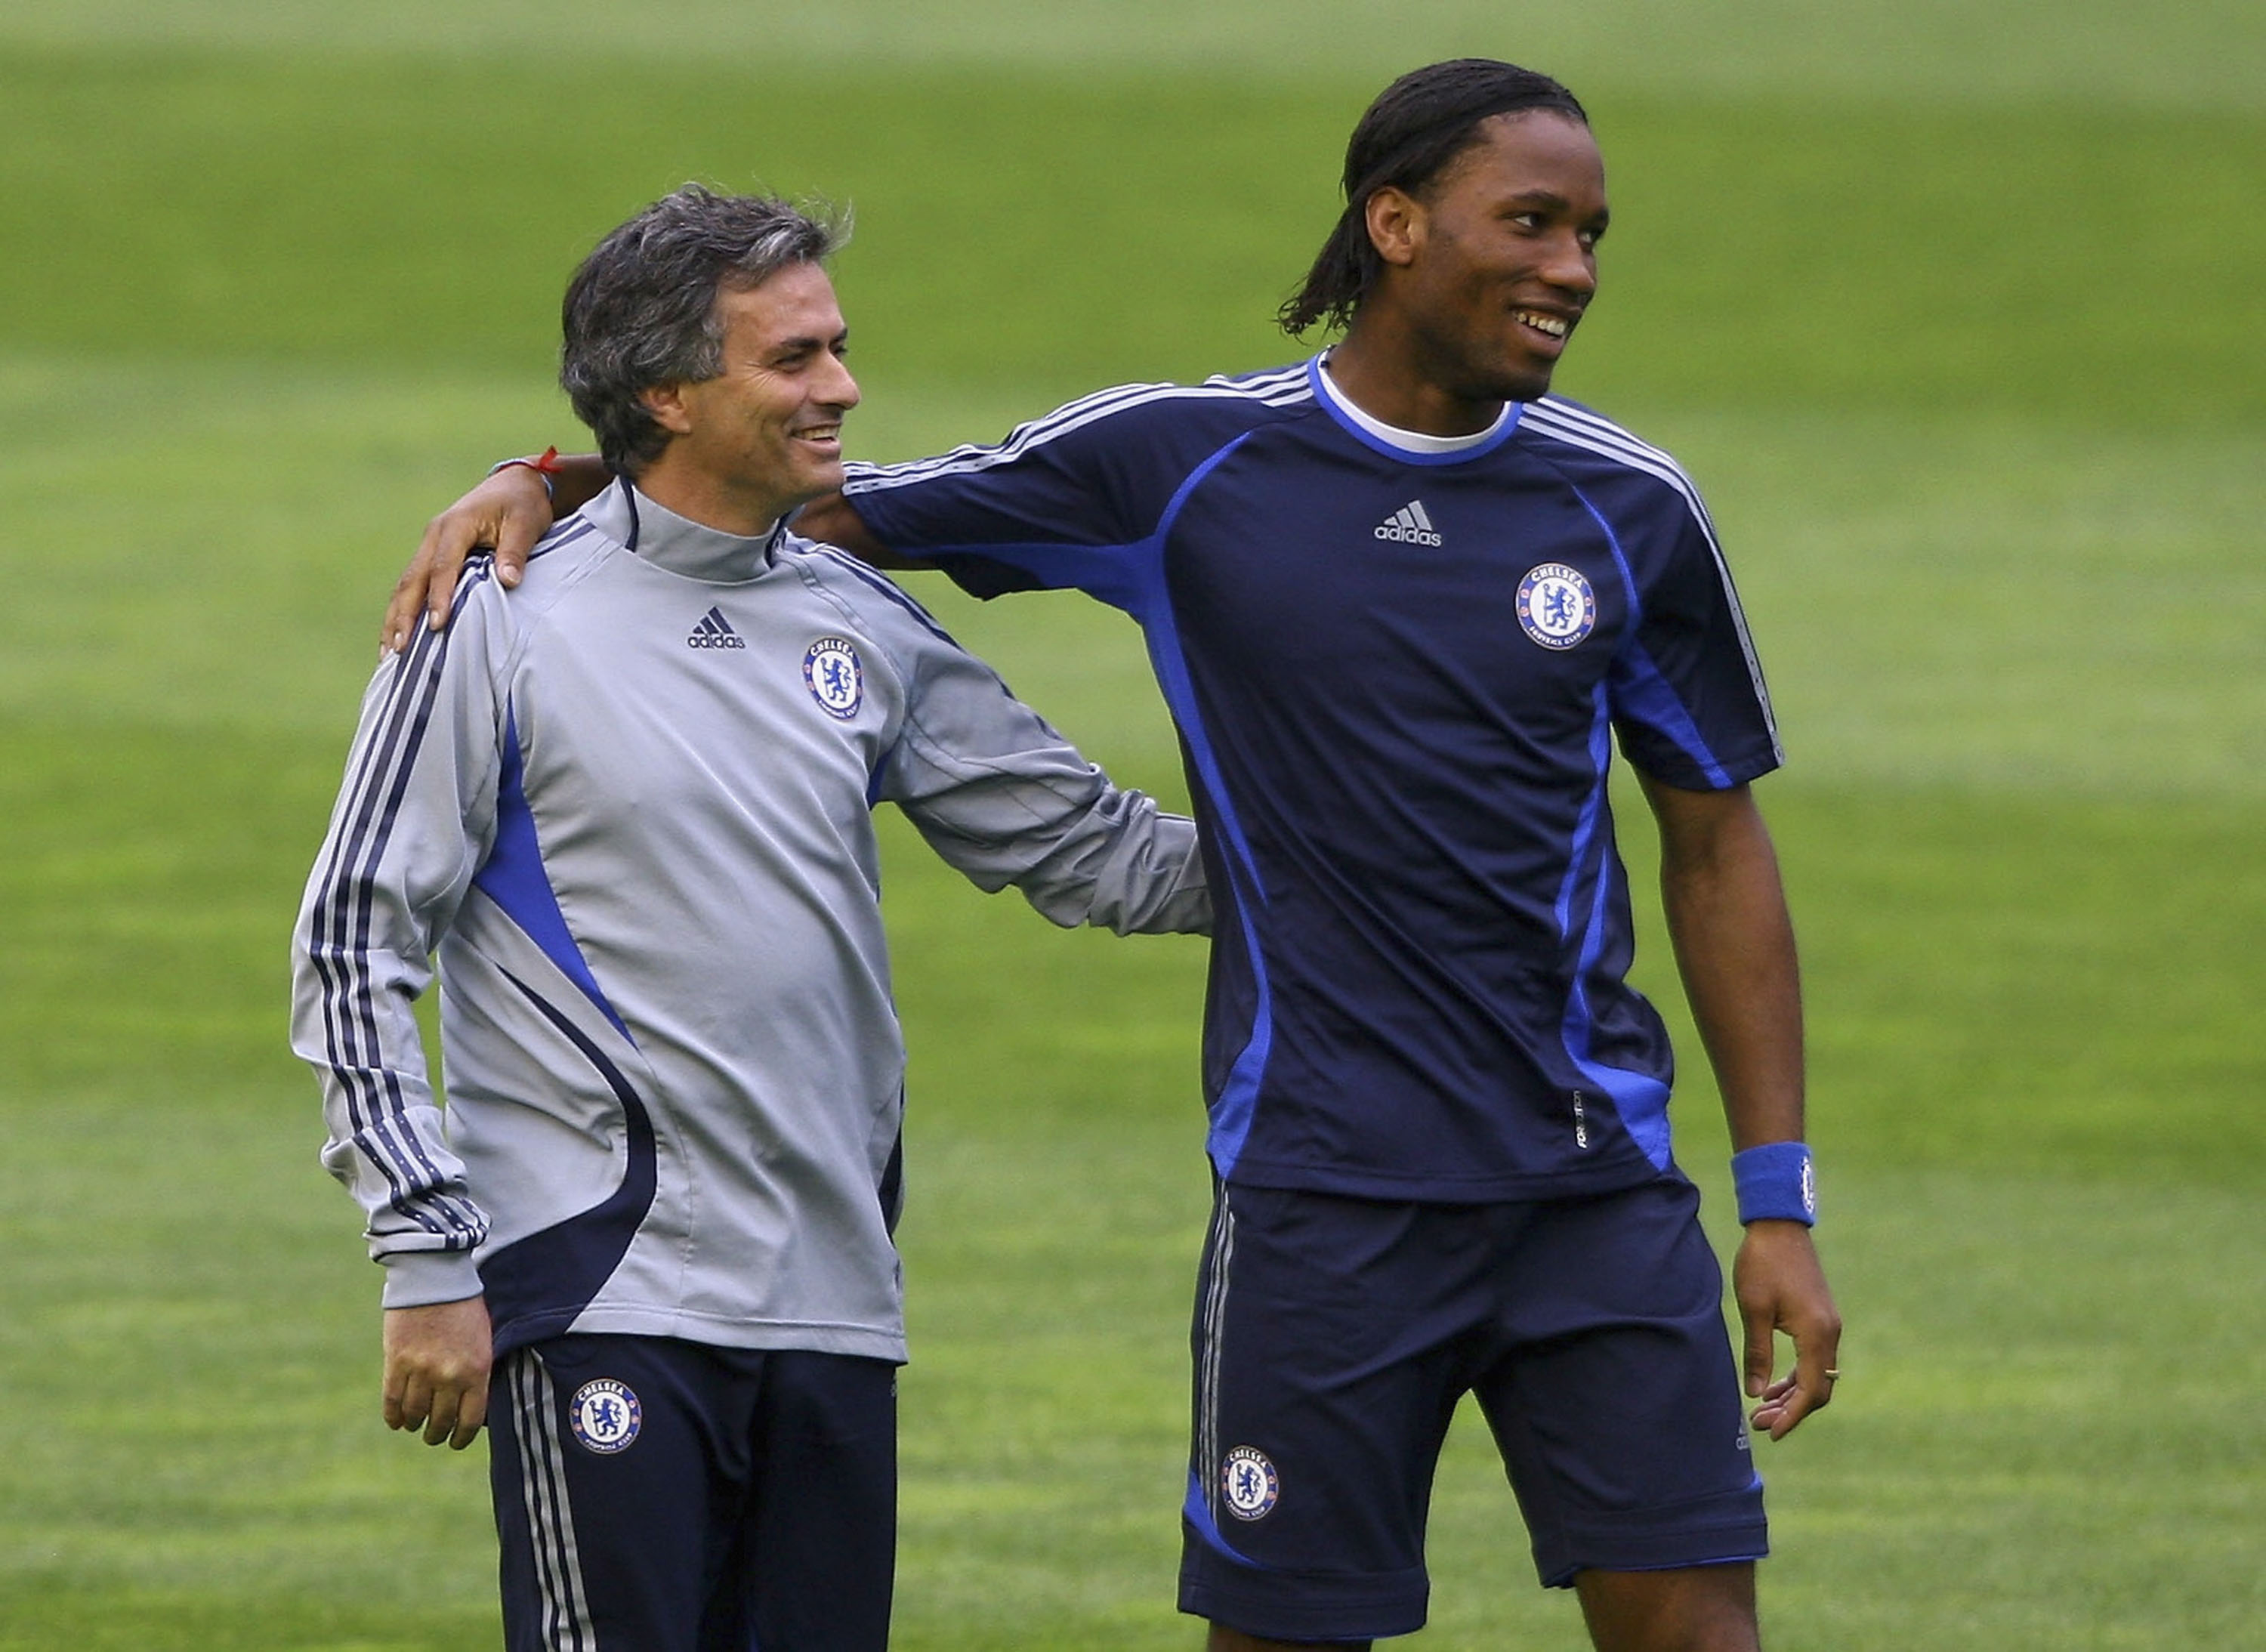 Didier Drogba speaks out on Jose Mourinho's managerial credentials following Man Utd sacking